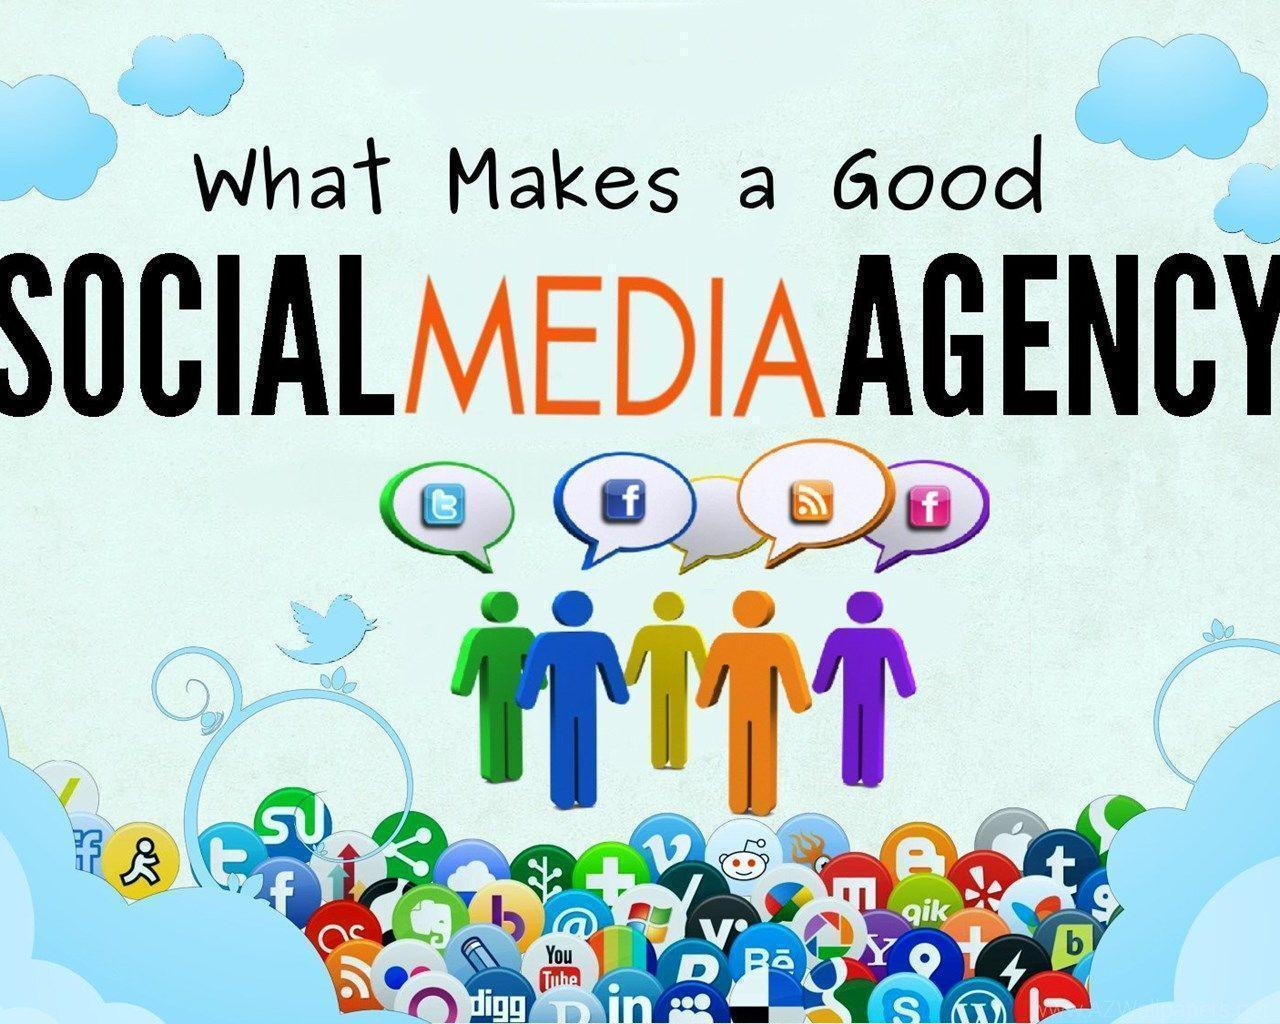 Social Media Agency HD For Wallpapers Desktop Backgrounds